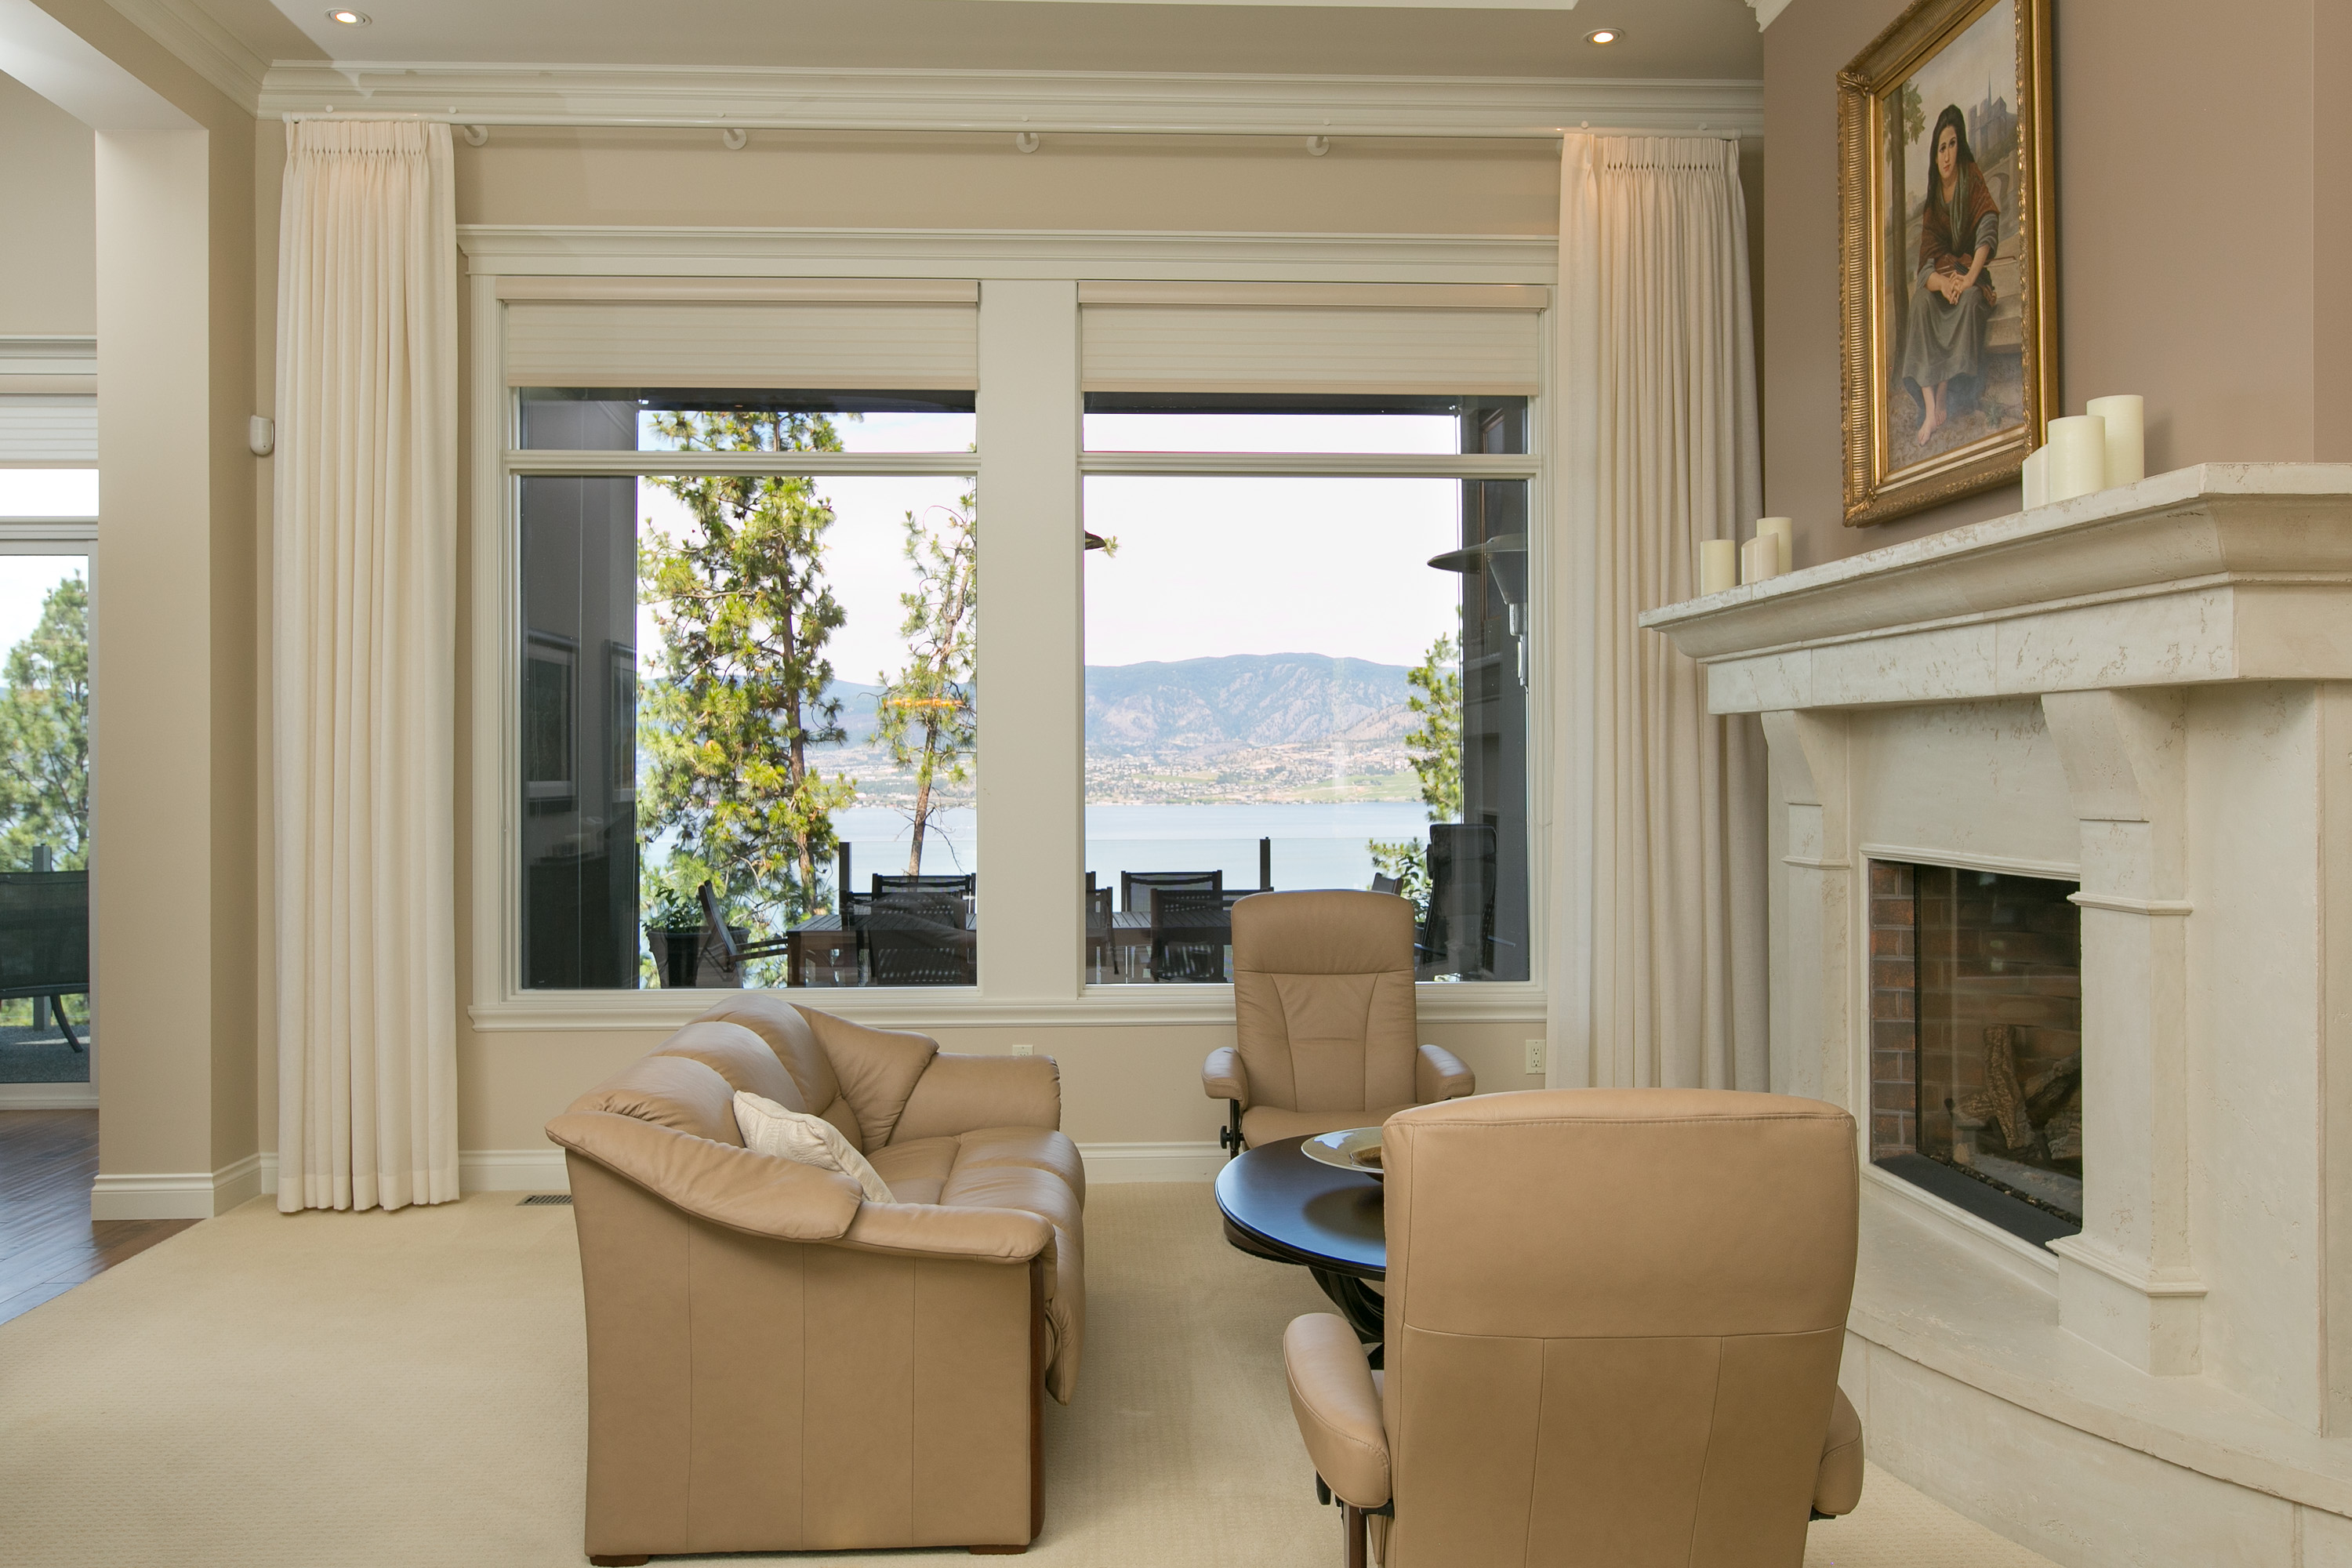 Awesome 5386 Tanager Court, Kelowna,   Rebecca April  Kelowna Realtor/ Interior  DesignerRebecca April  Kelowna Realtor/ Interior Designer